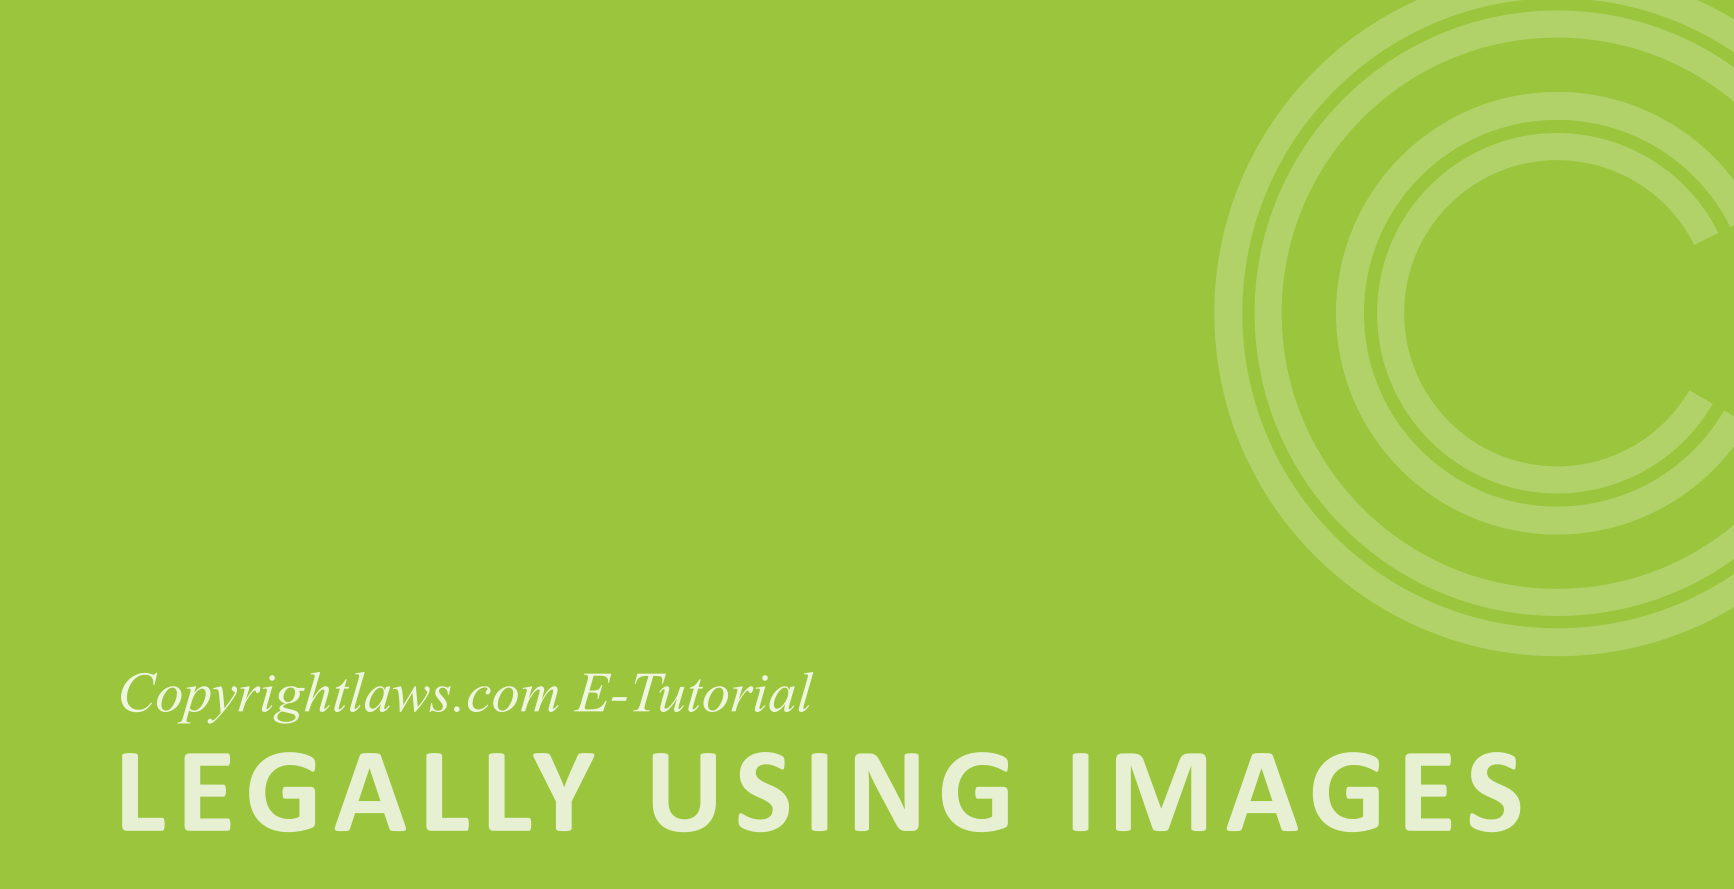 Legally using images online course will teach you how to legally use images found on Google